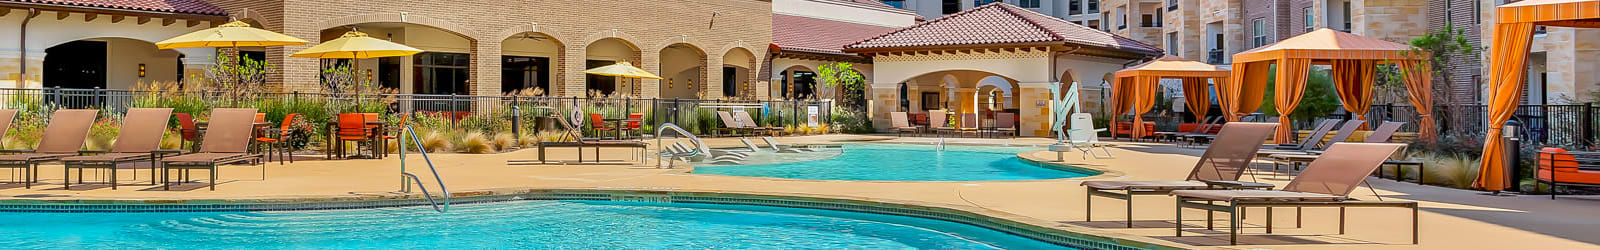 Pet friendly at Villas at the Rim in San Antonio, Texas